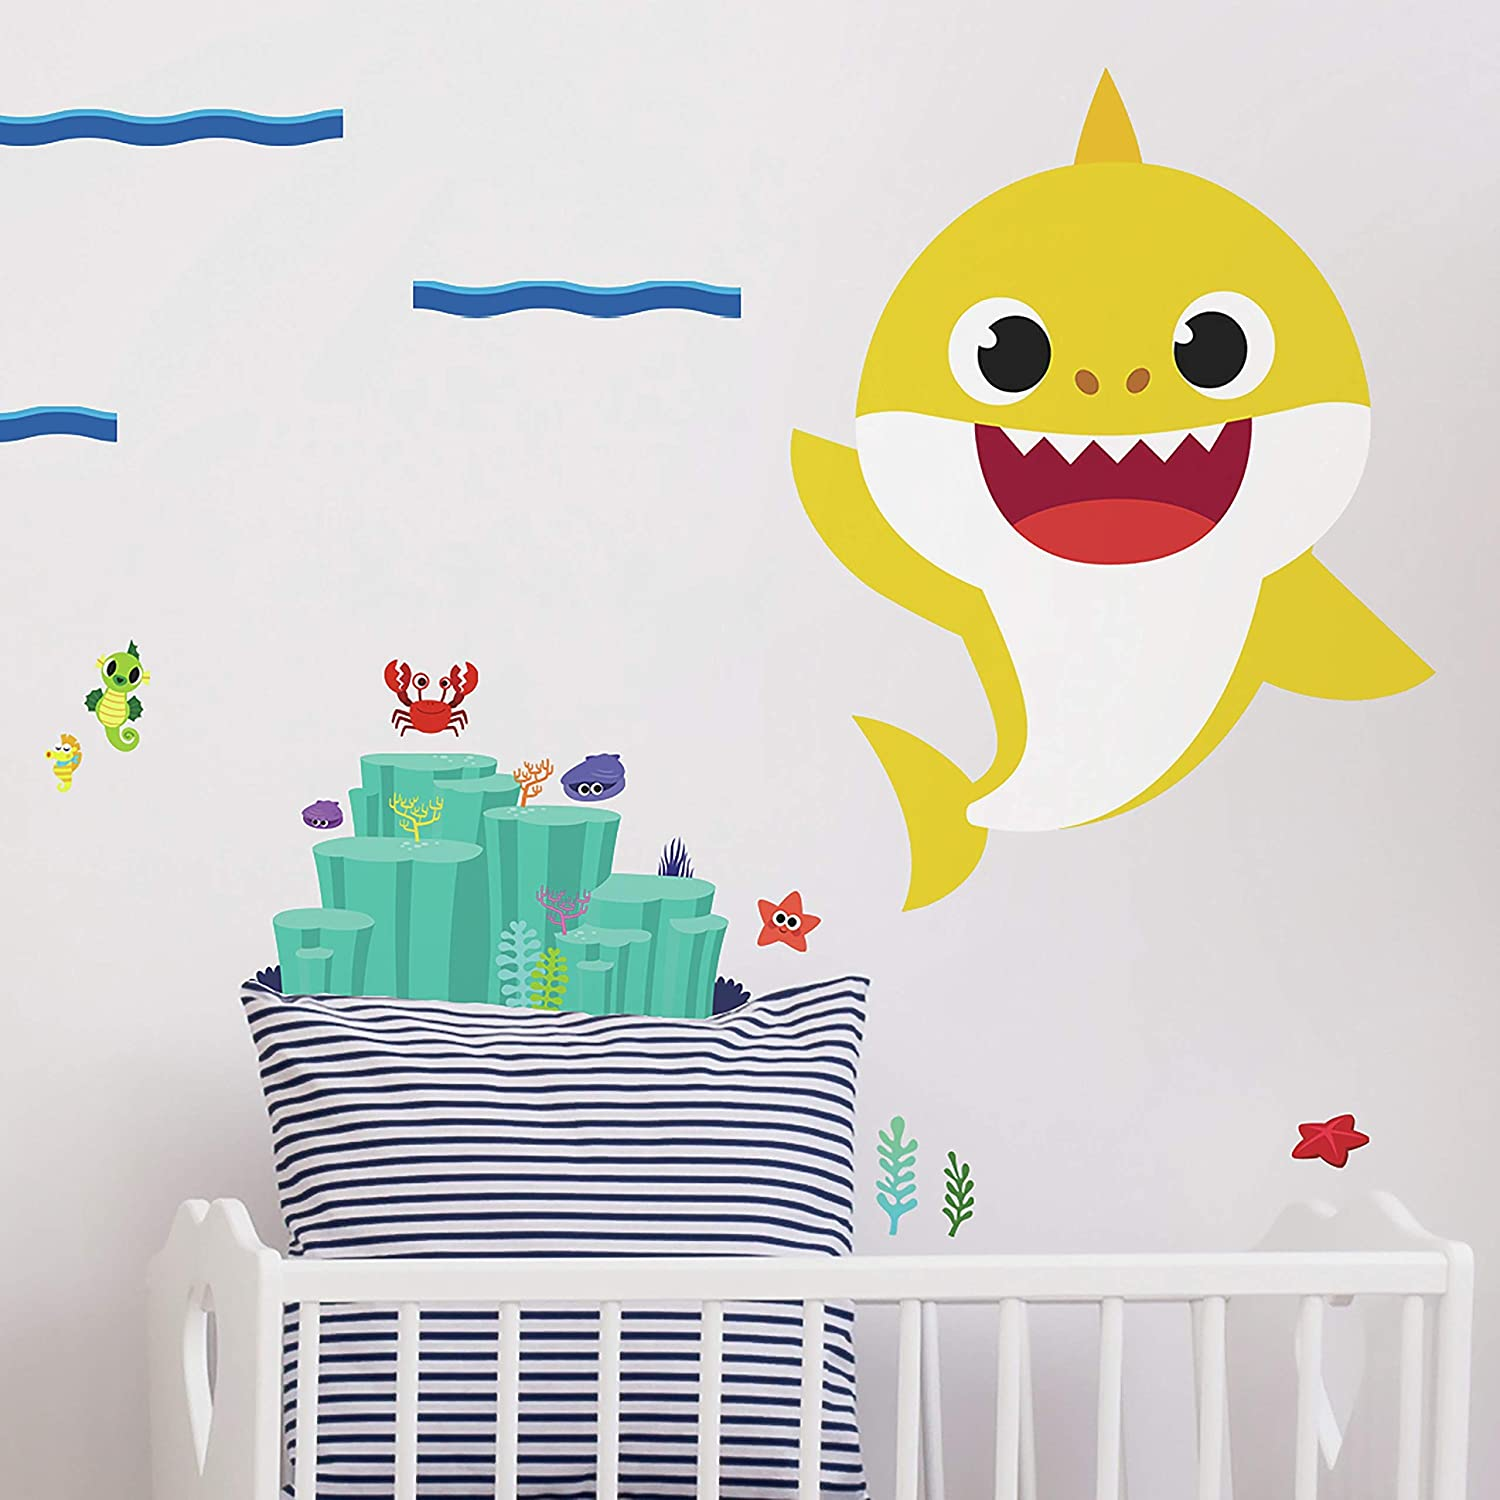 RoomMates Baby Shark Peel And Stick Giant Wall Decals | Yellow Kids Room Decor